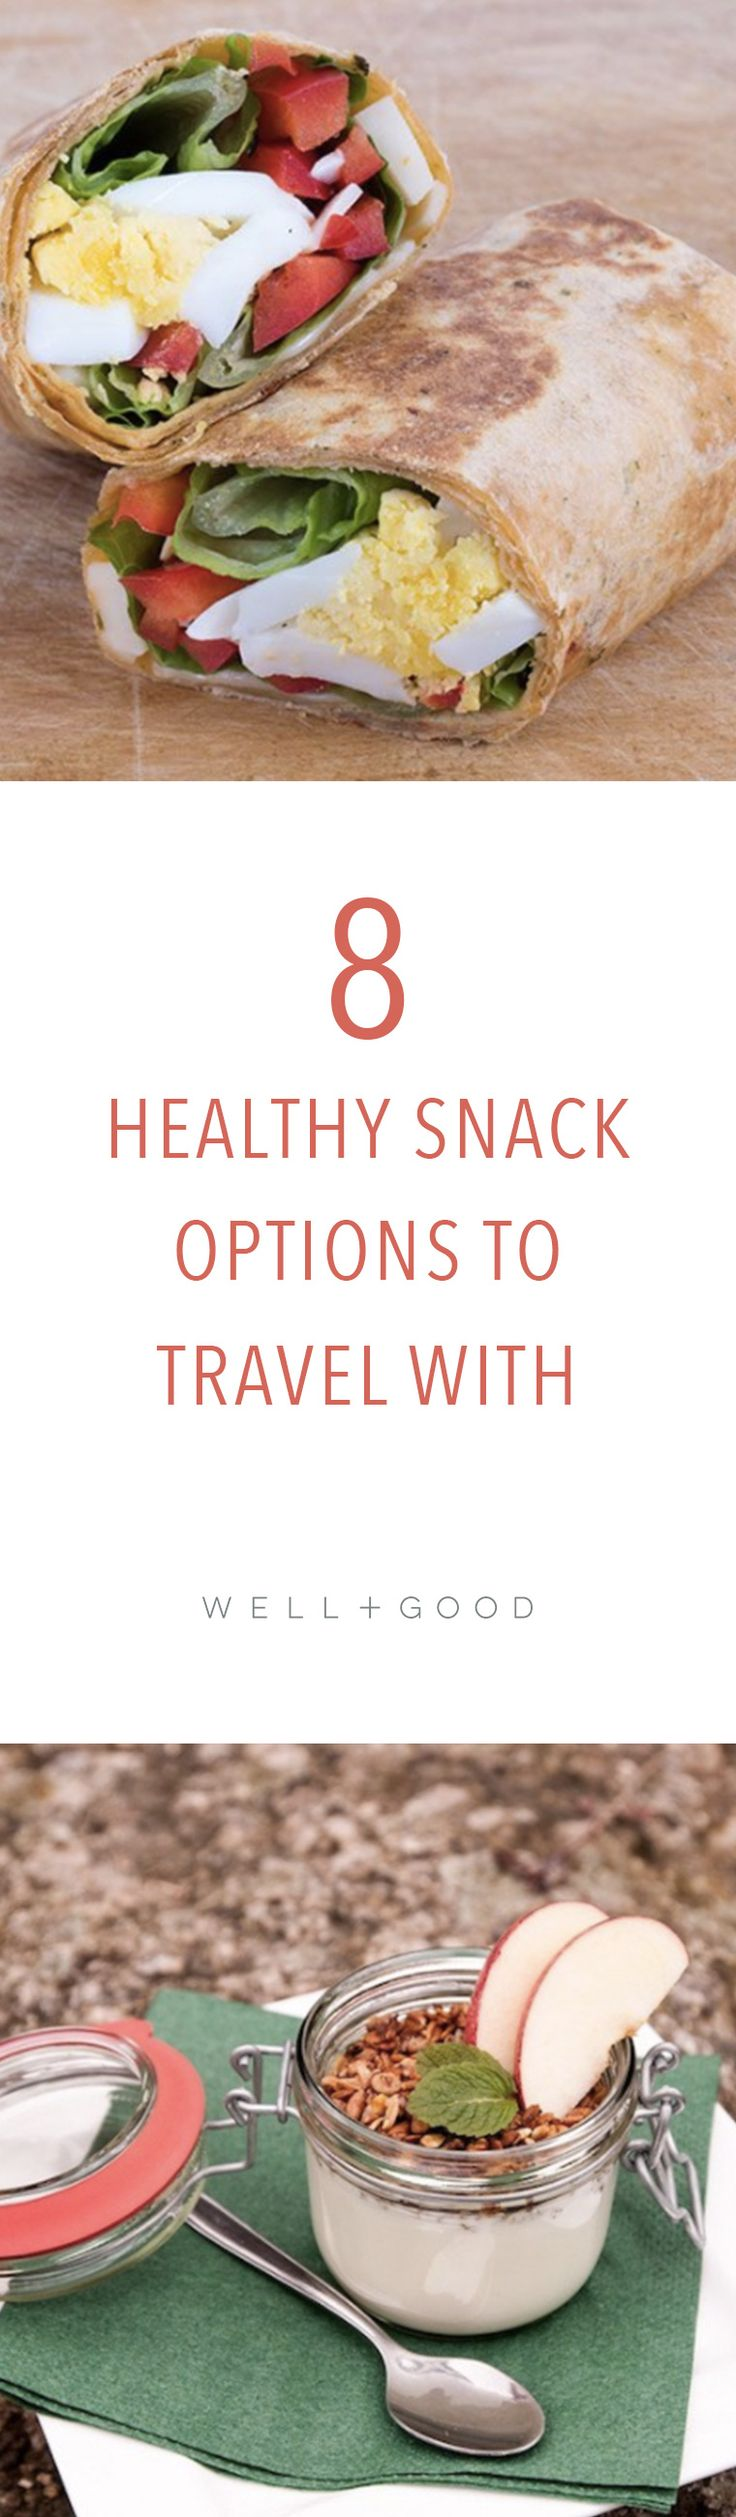 8 healthy snacks to travel with